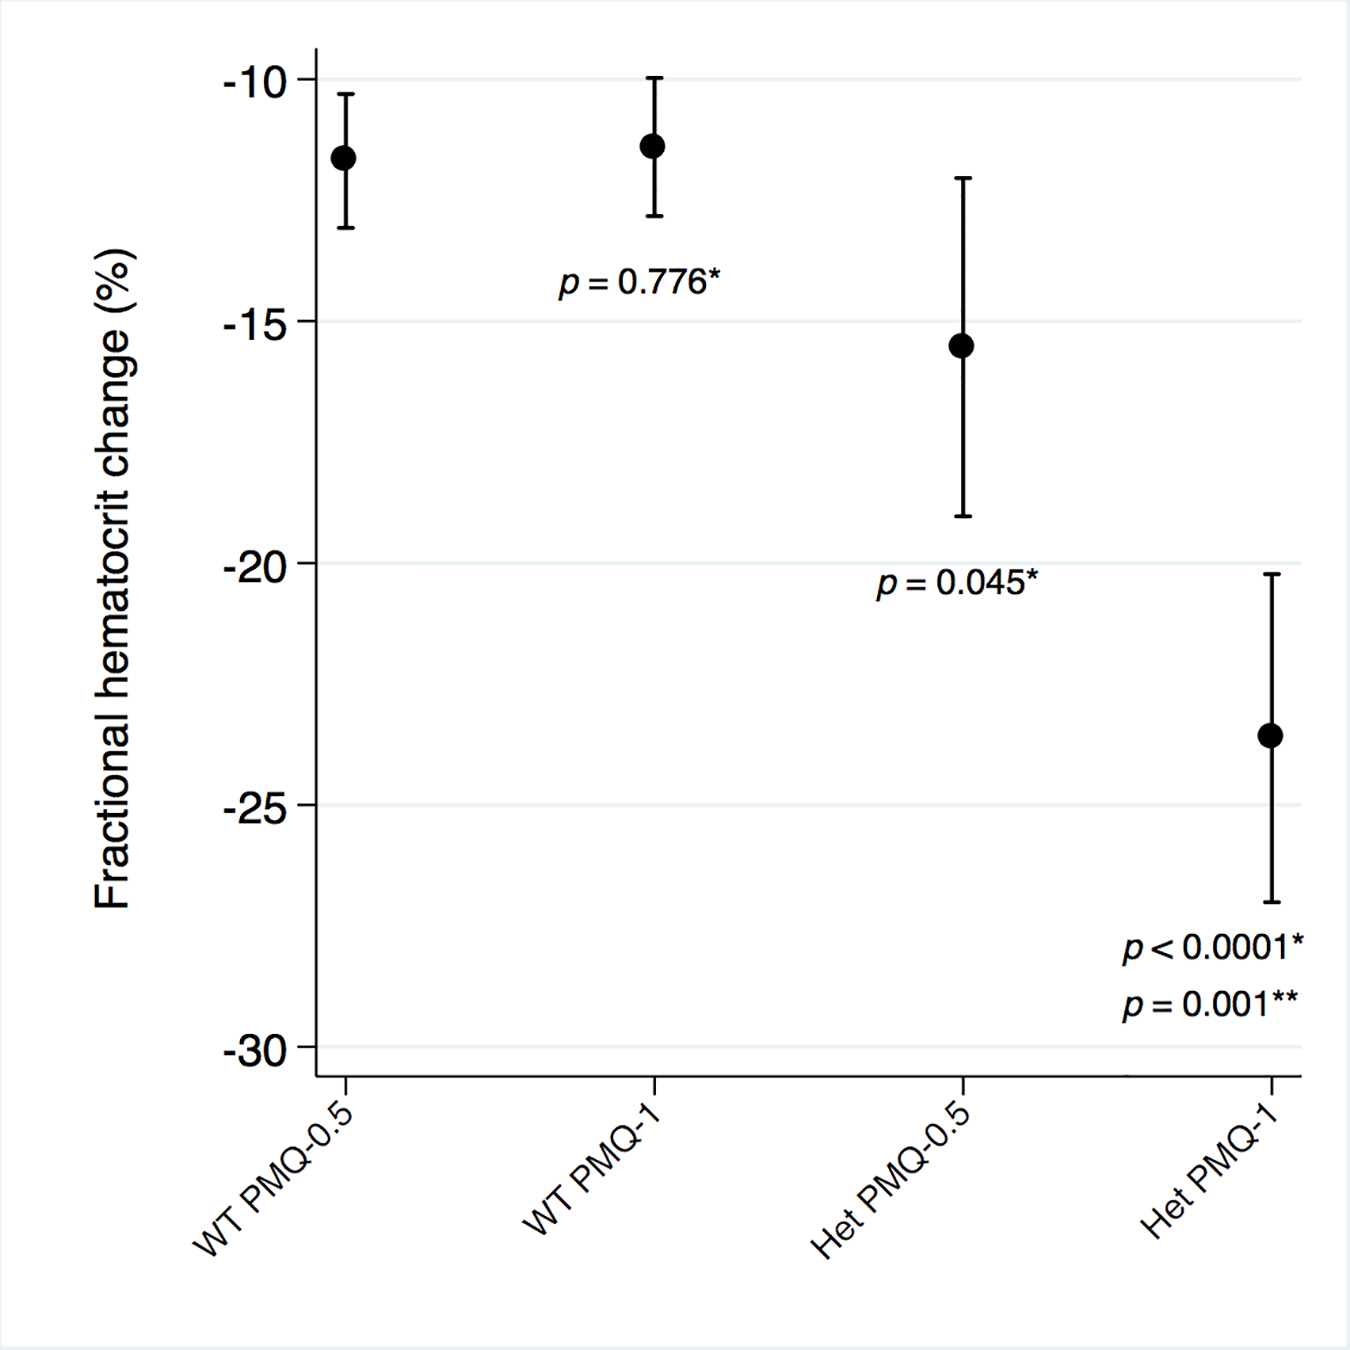 Mean maximum individual fractional haematocrit reductions in G6PD heterozygous and wild-type females taking PMQ-1 or PMQ-0.5.